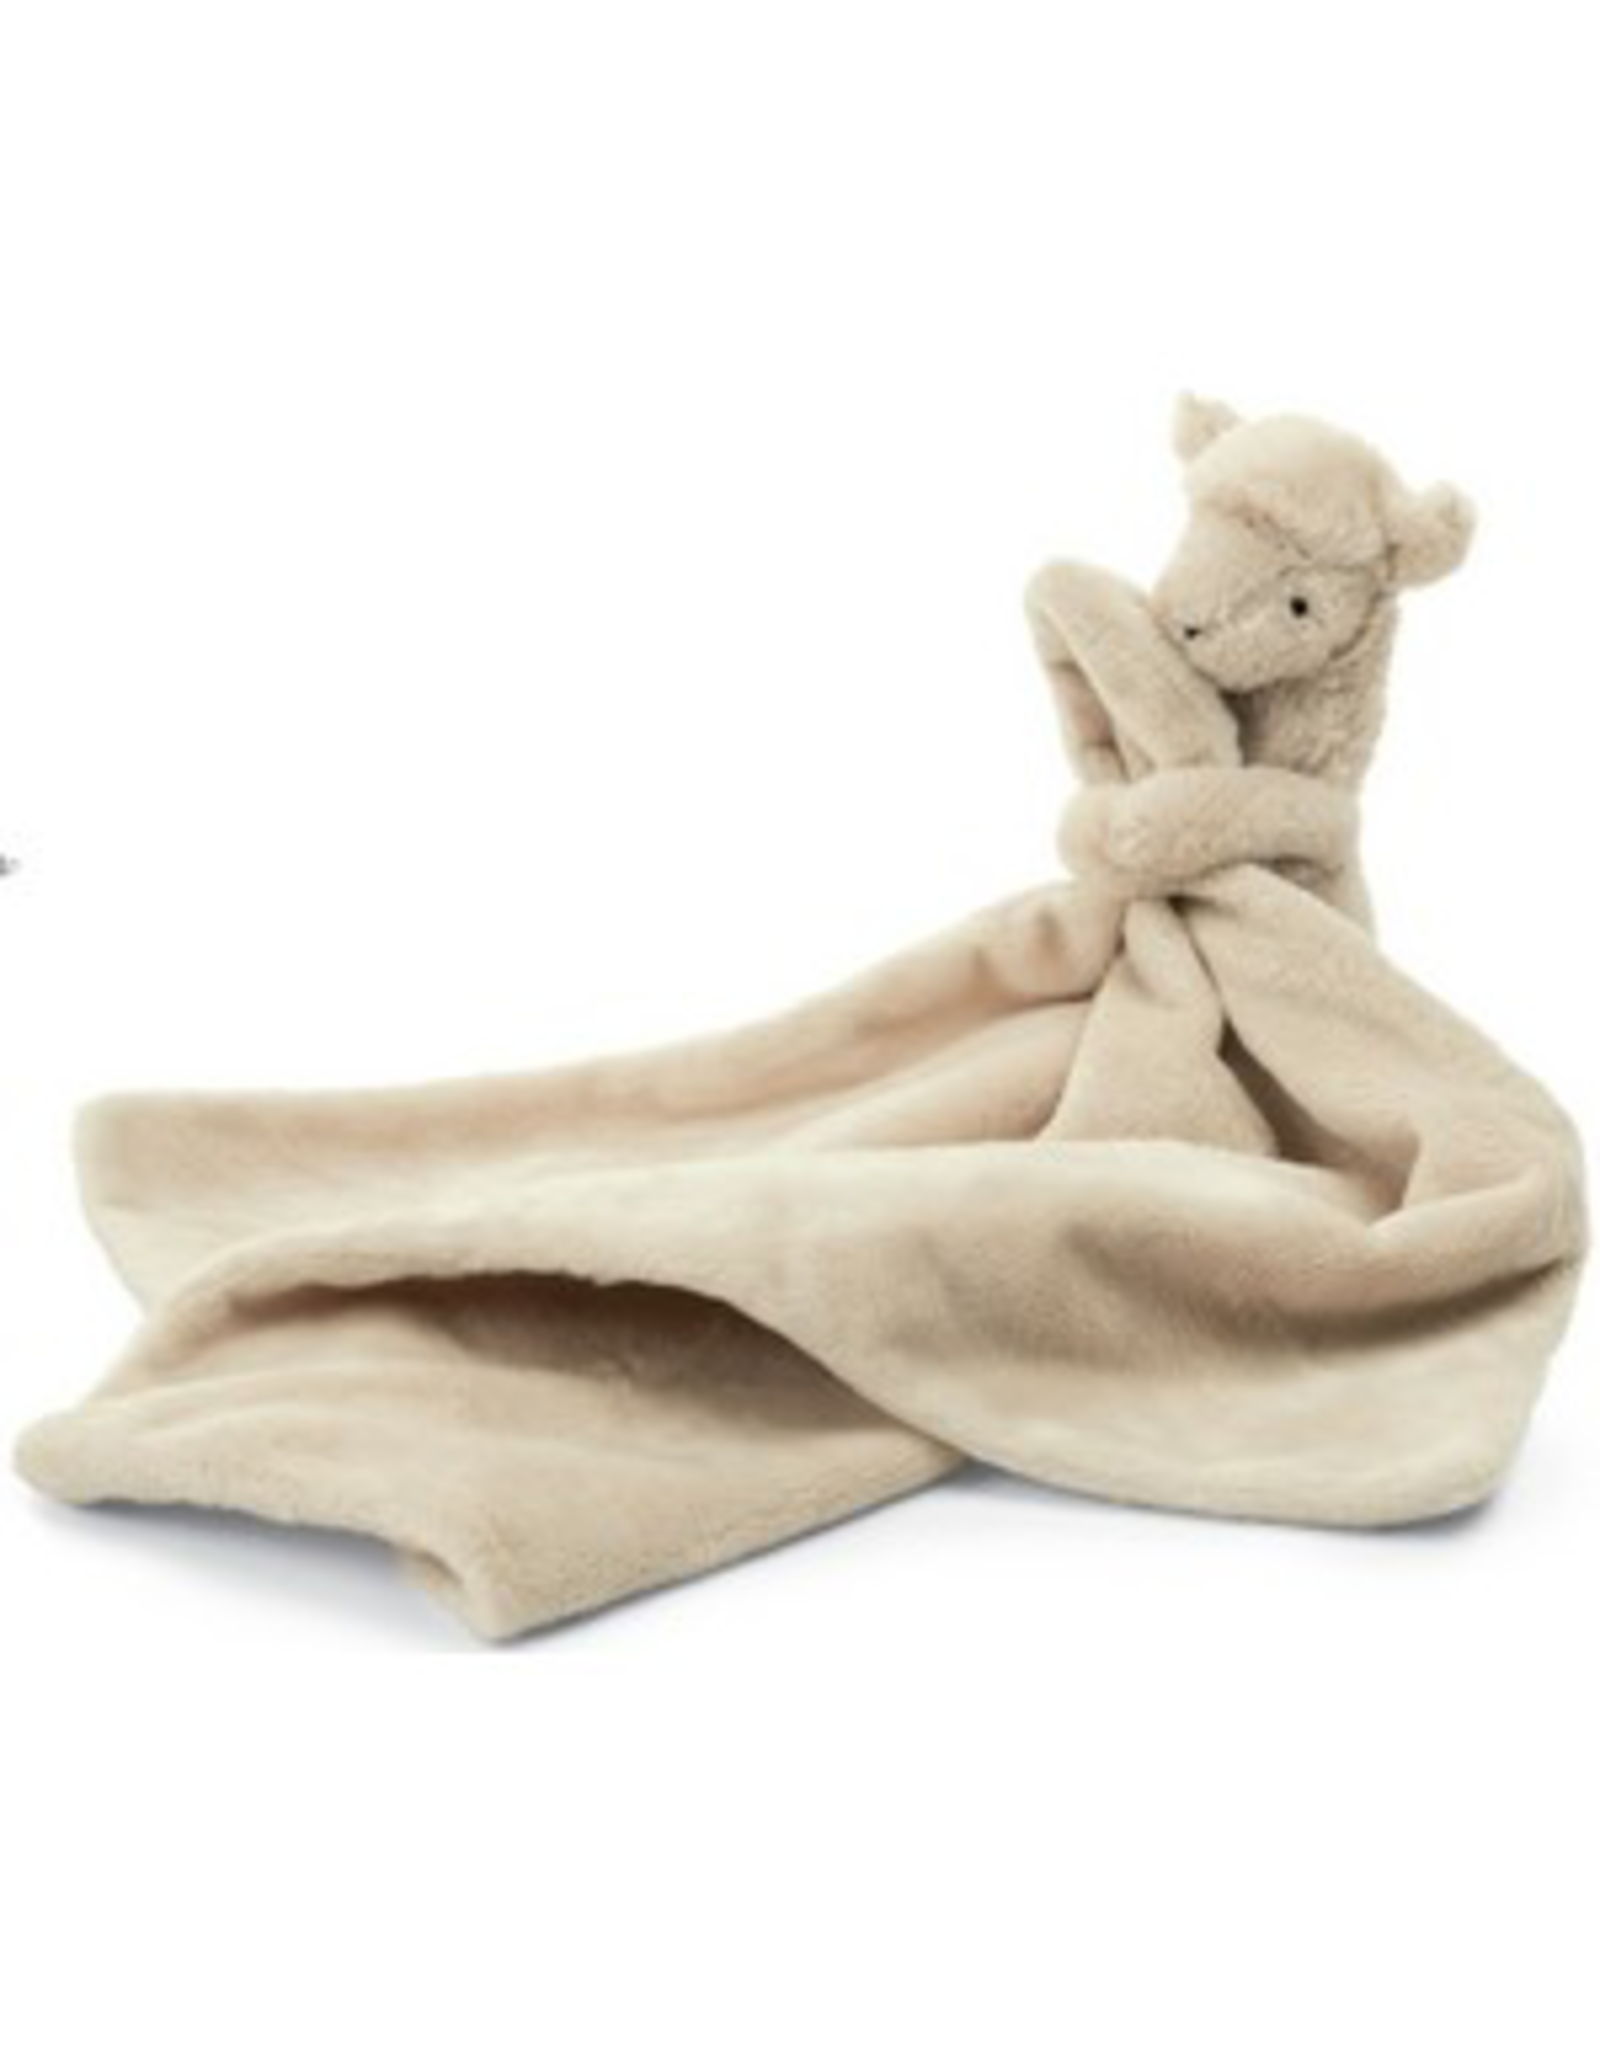 jellycat jellycat bashful llama soother